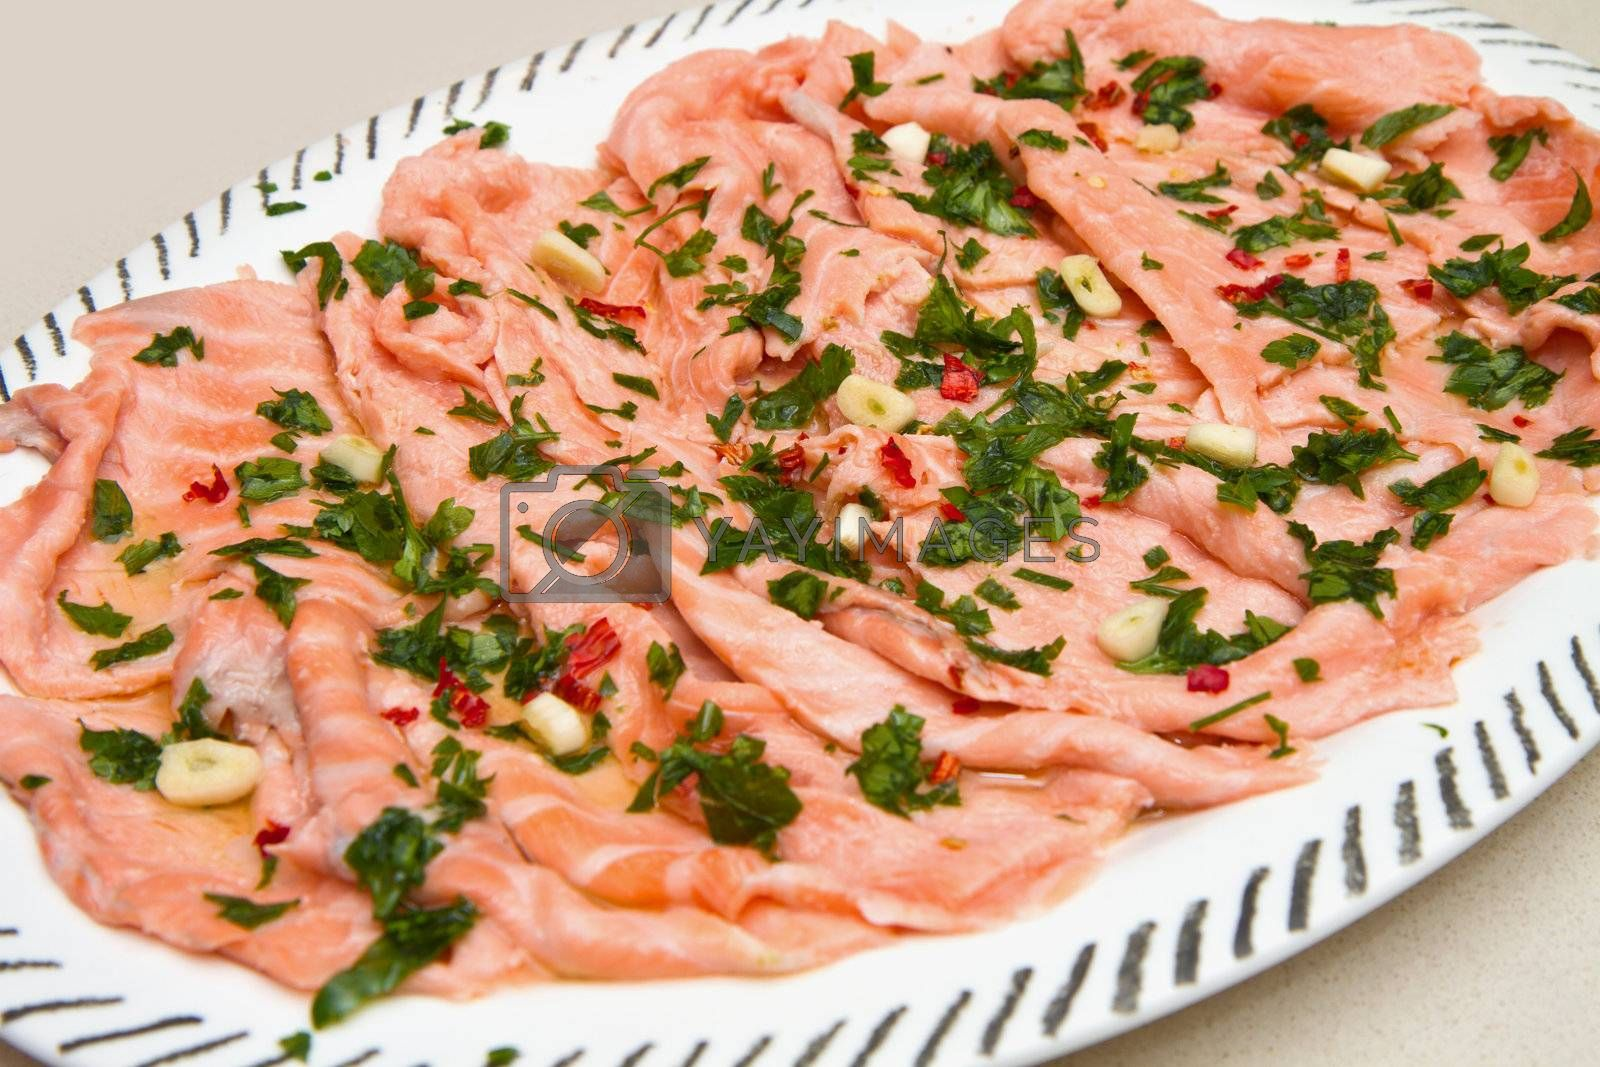 dish with marinated salmon